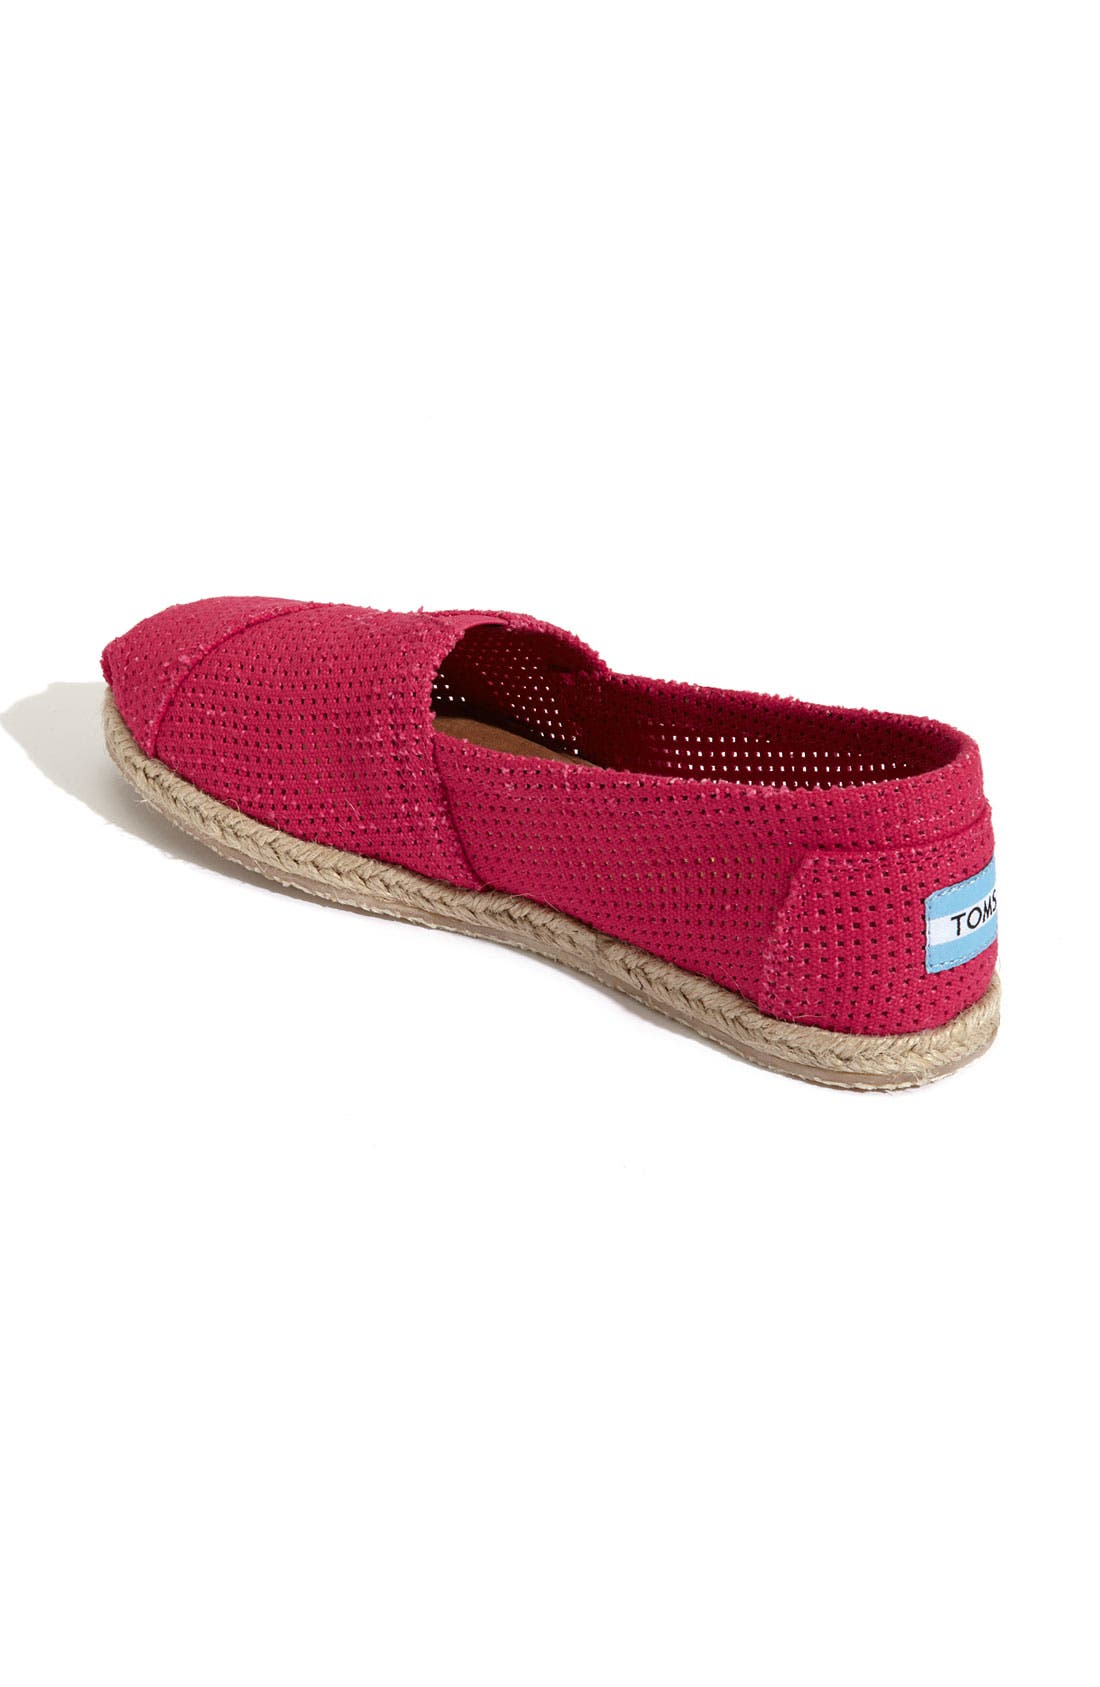 Alternate Image 2  - TOMS 'Freetown - Classic' Espadrille Slip-On (Women)